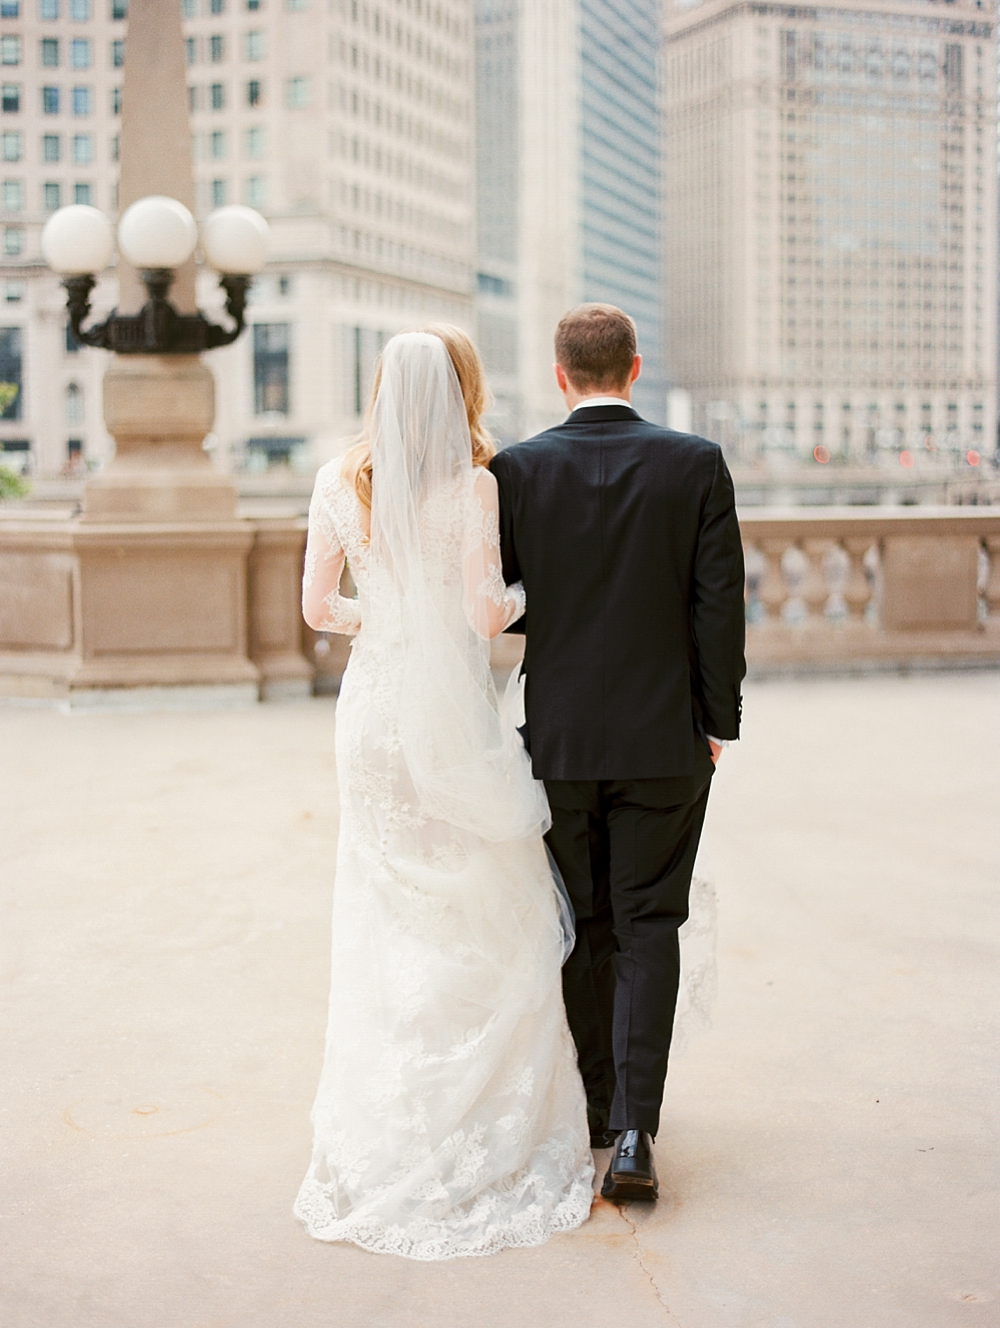 kristin-la-voie-photography-chicago-wedding-photographer-108